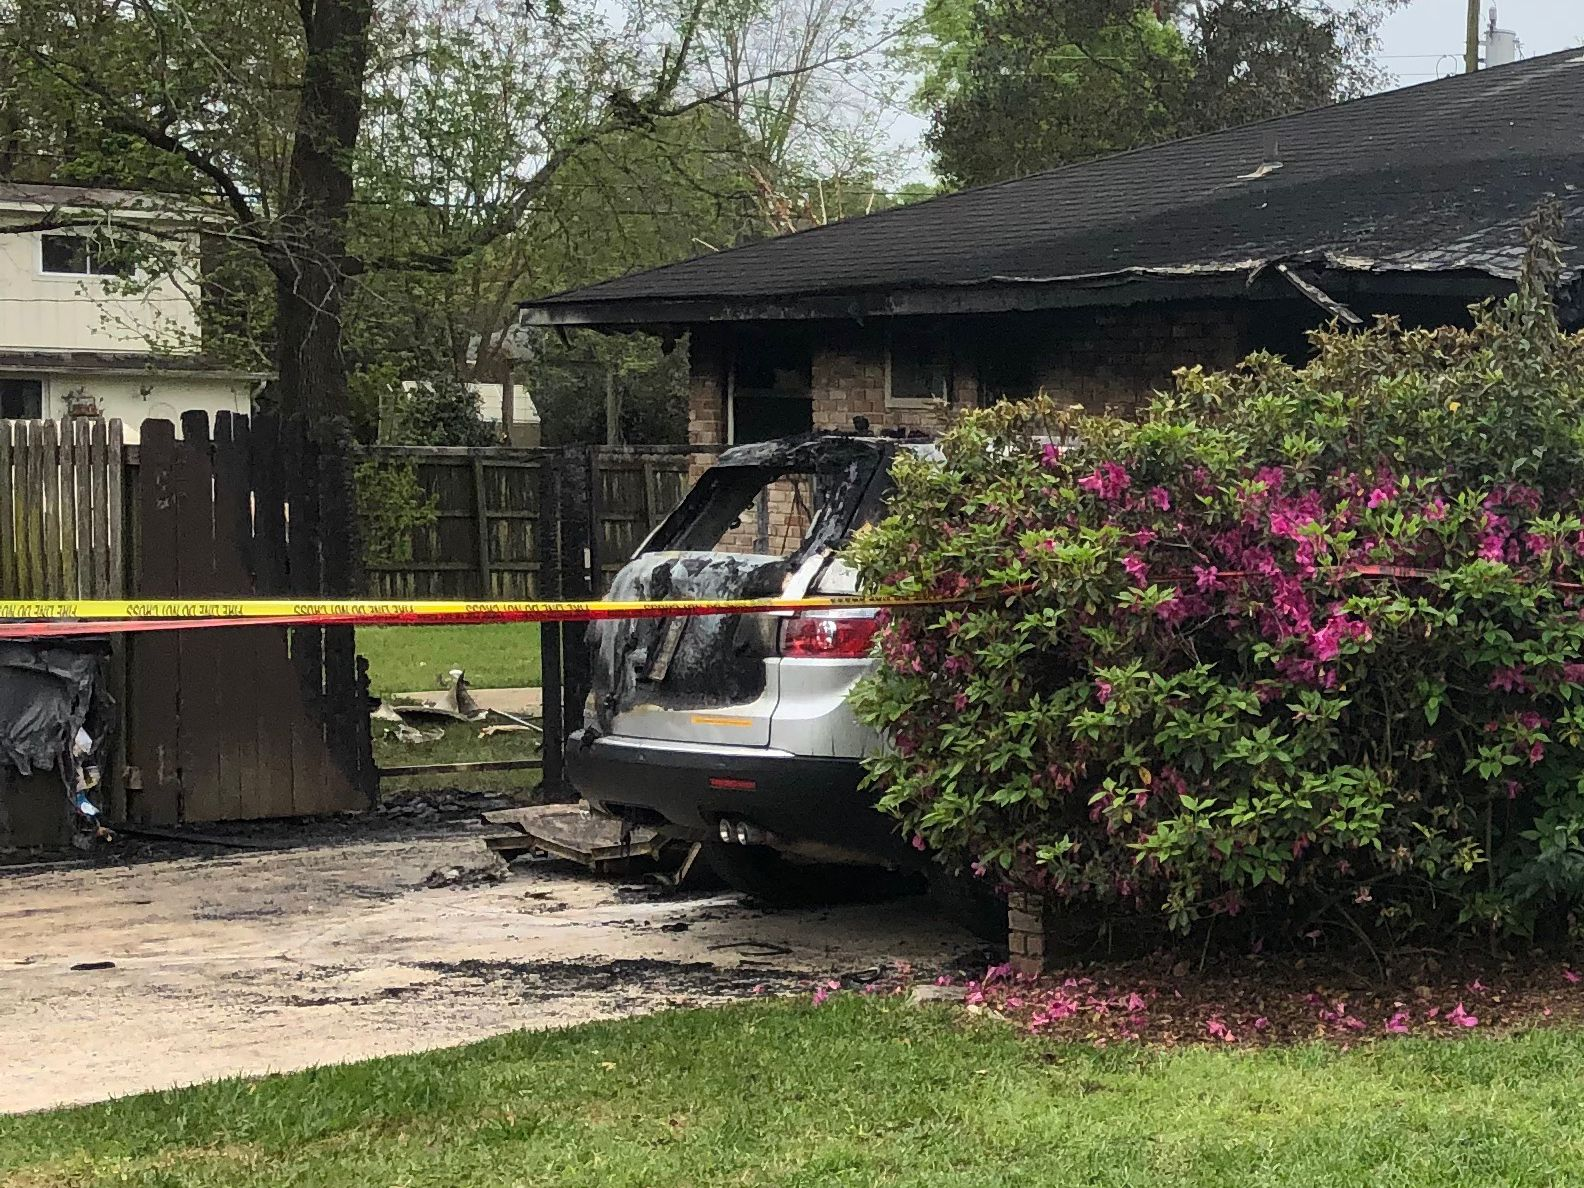 Neighbor says deadly house fire spread quicker than firefighters could respond